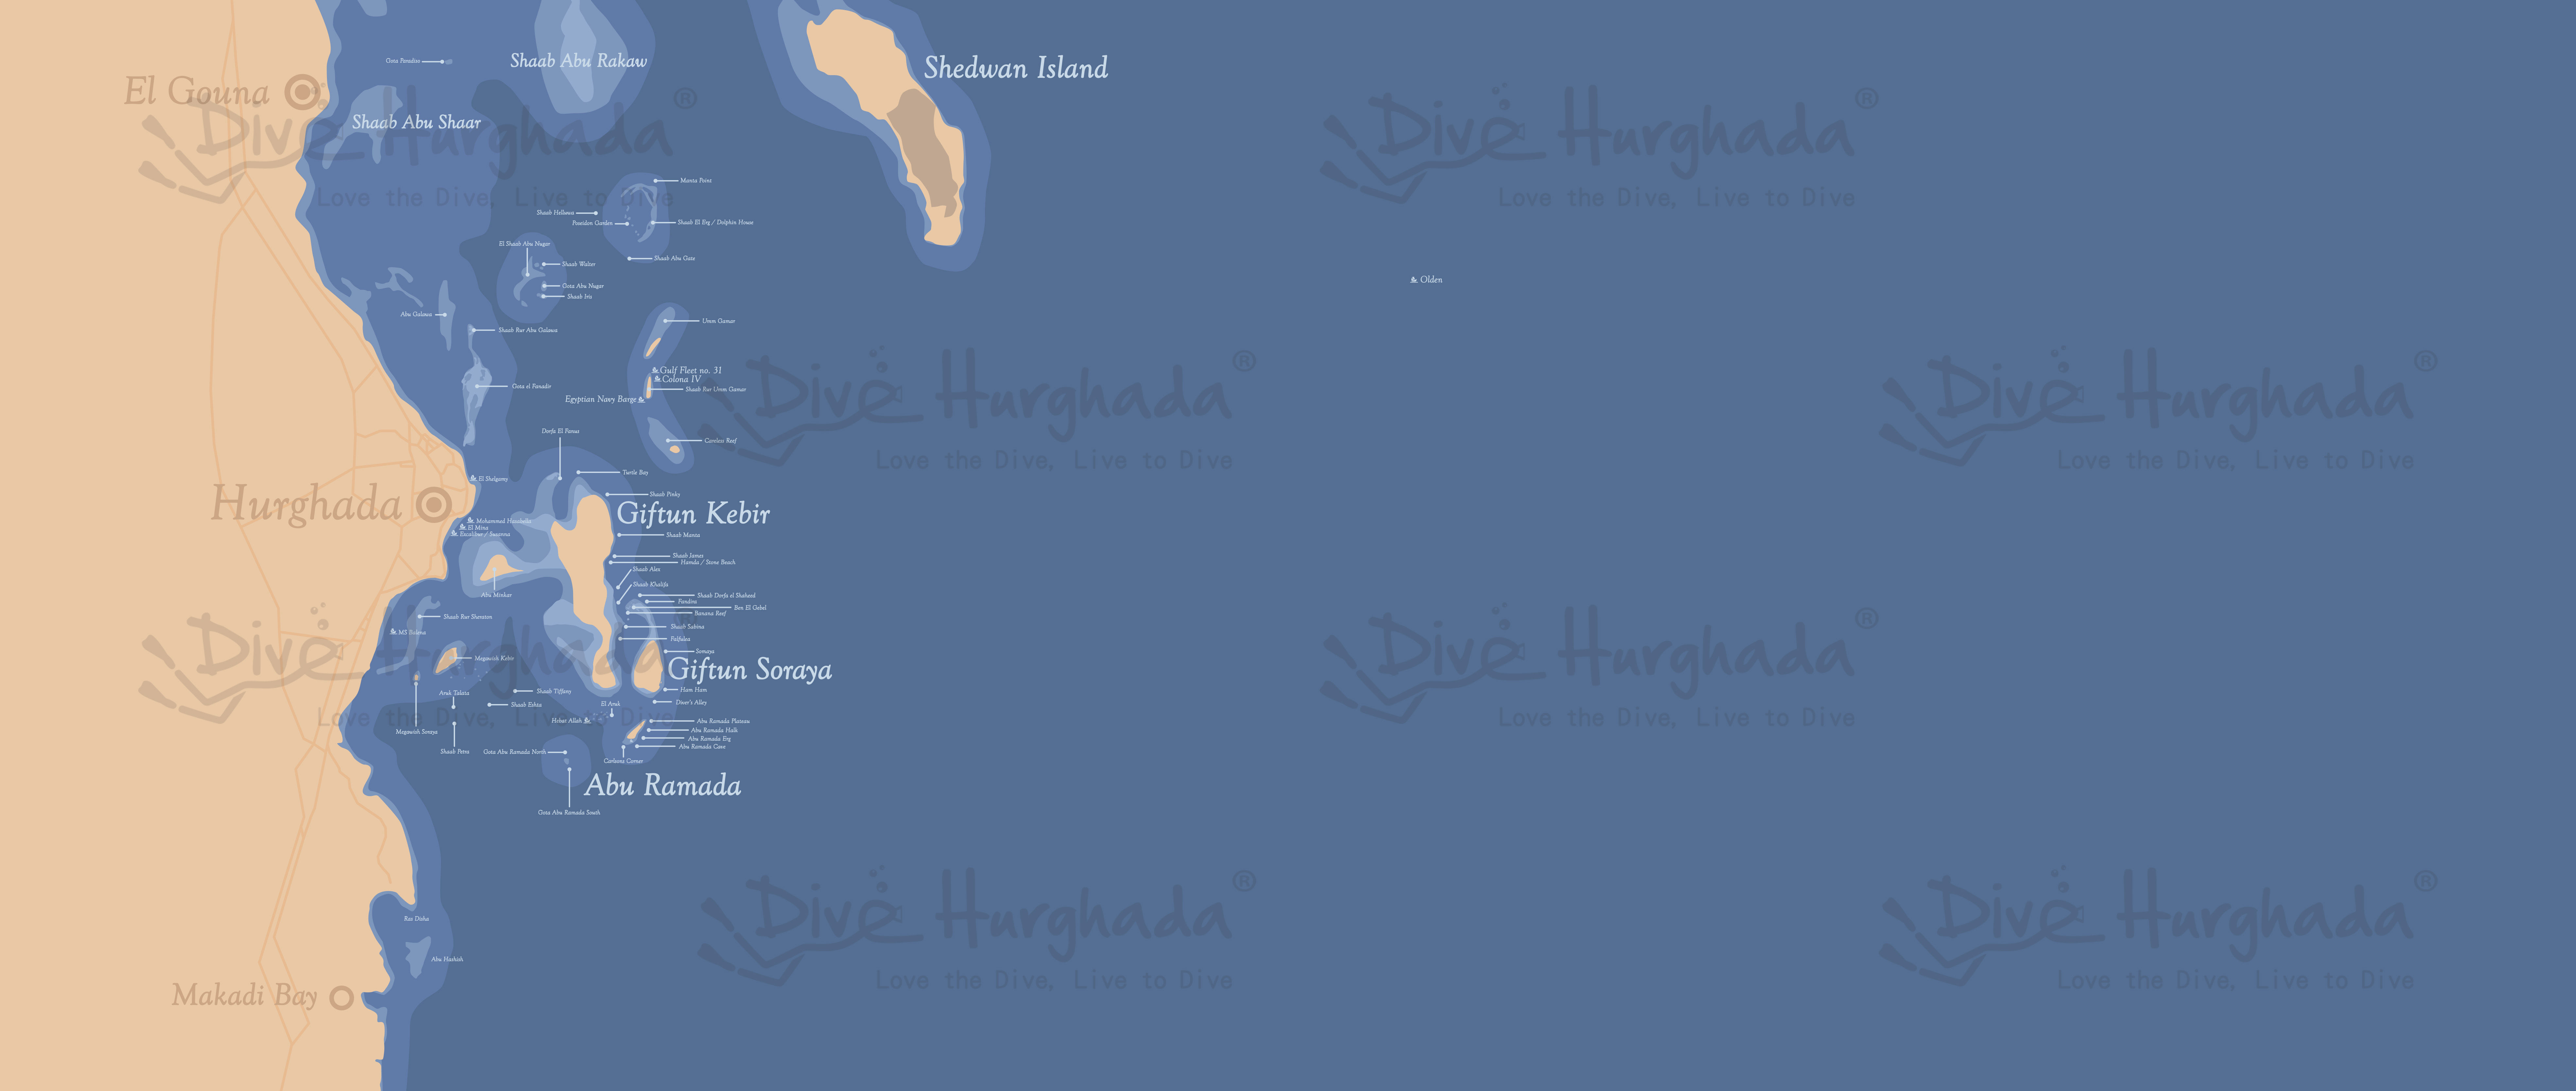 Hurghada Divesites and wrecks